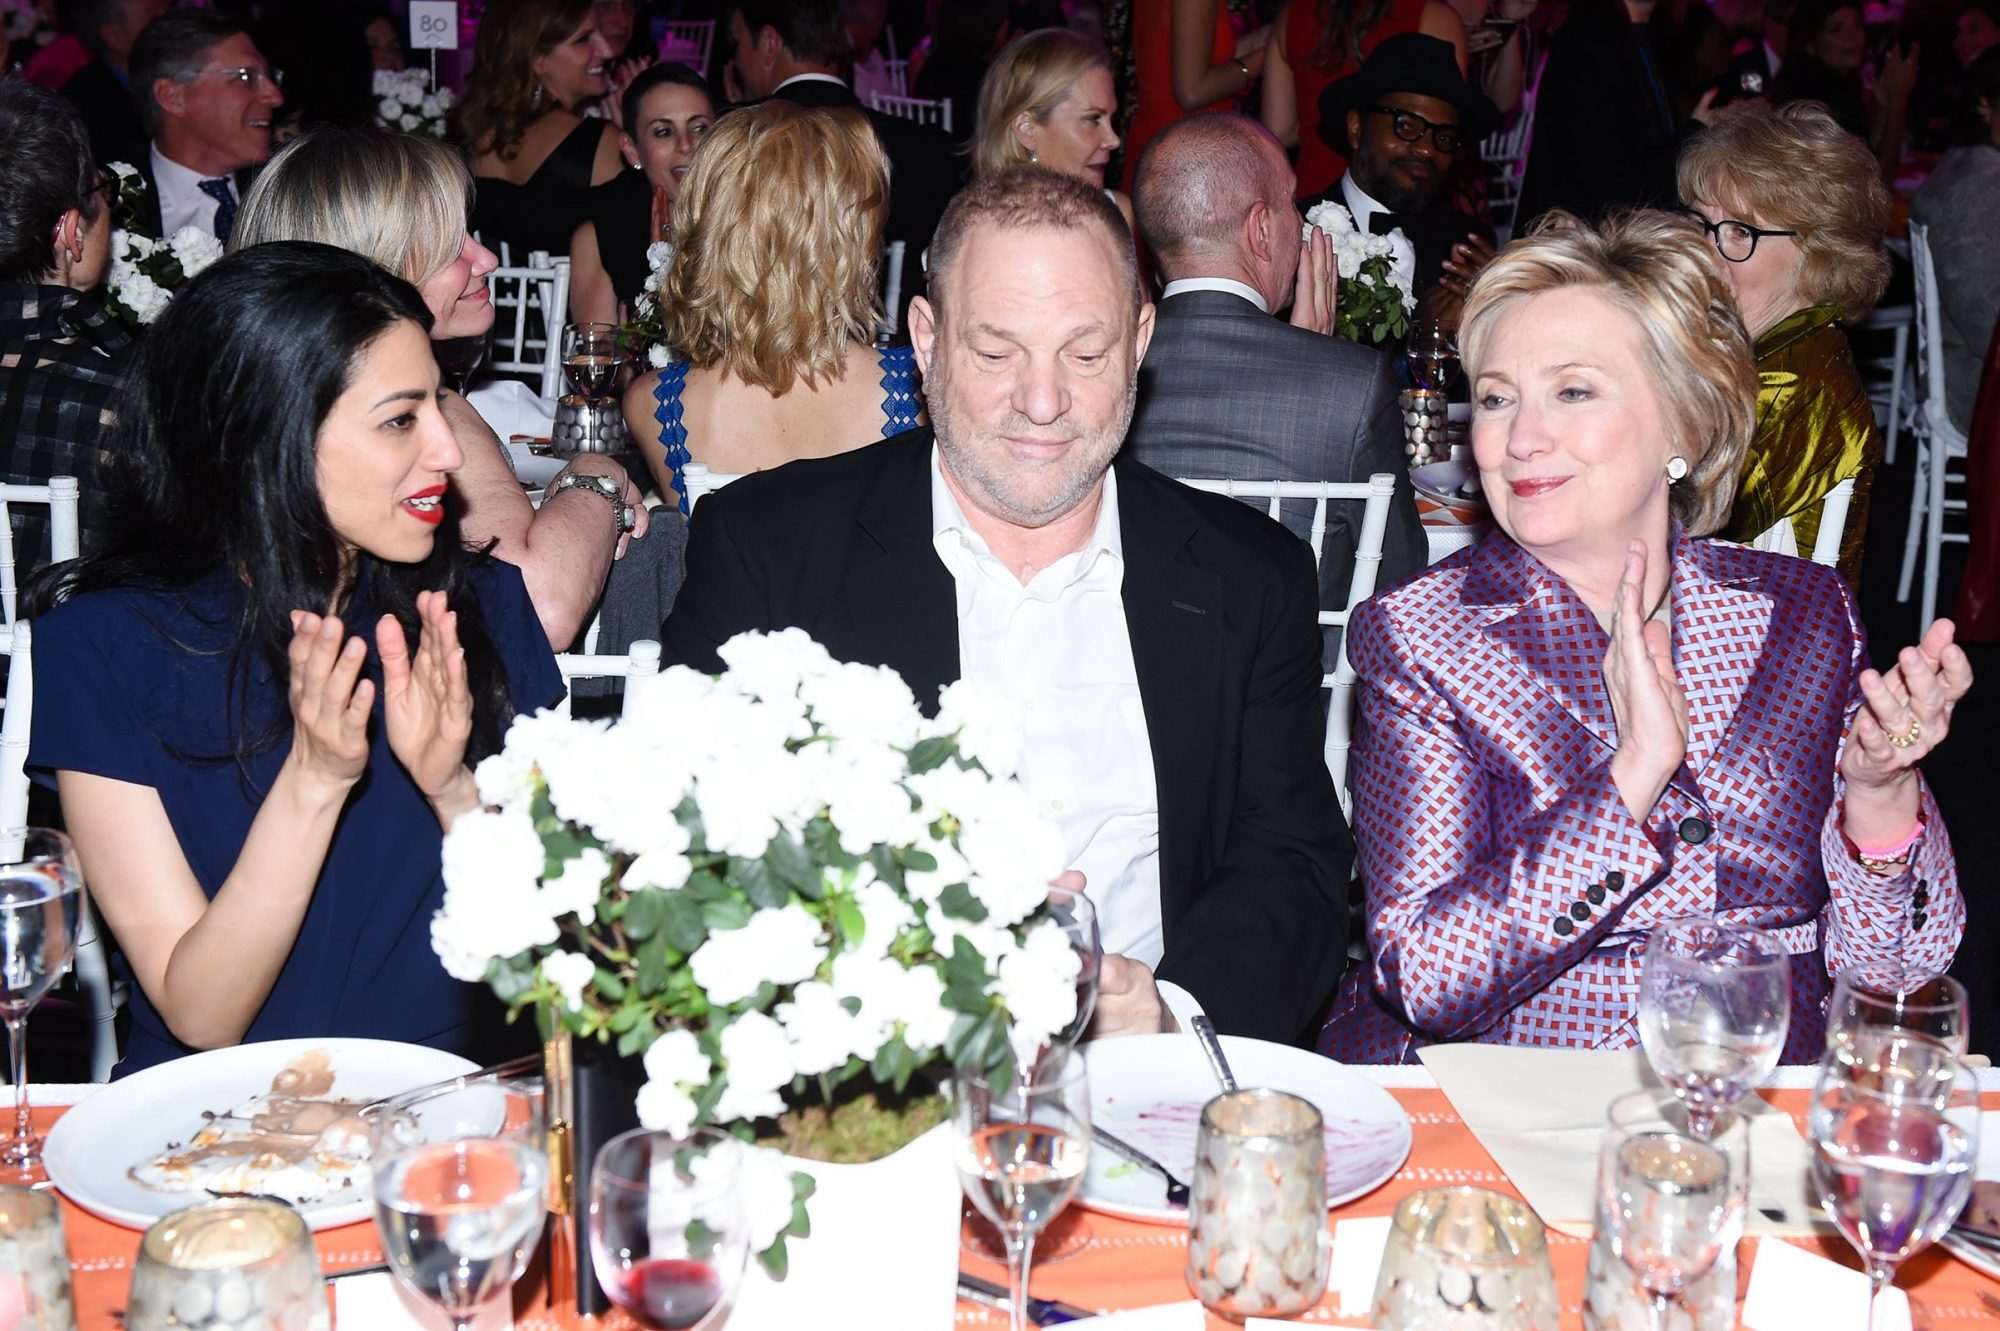 Planned Parenthood 100th Anniversary Gala, Inside, New York, USA - 02 May 2017